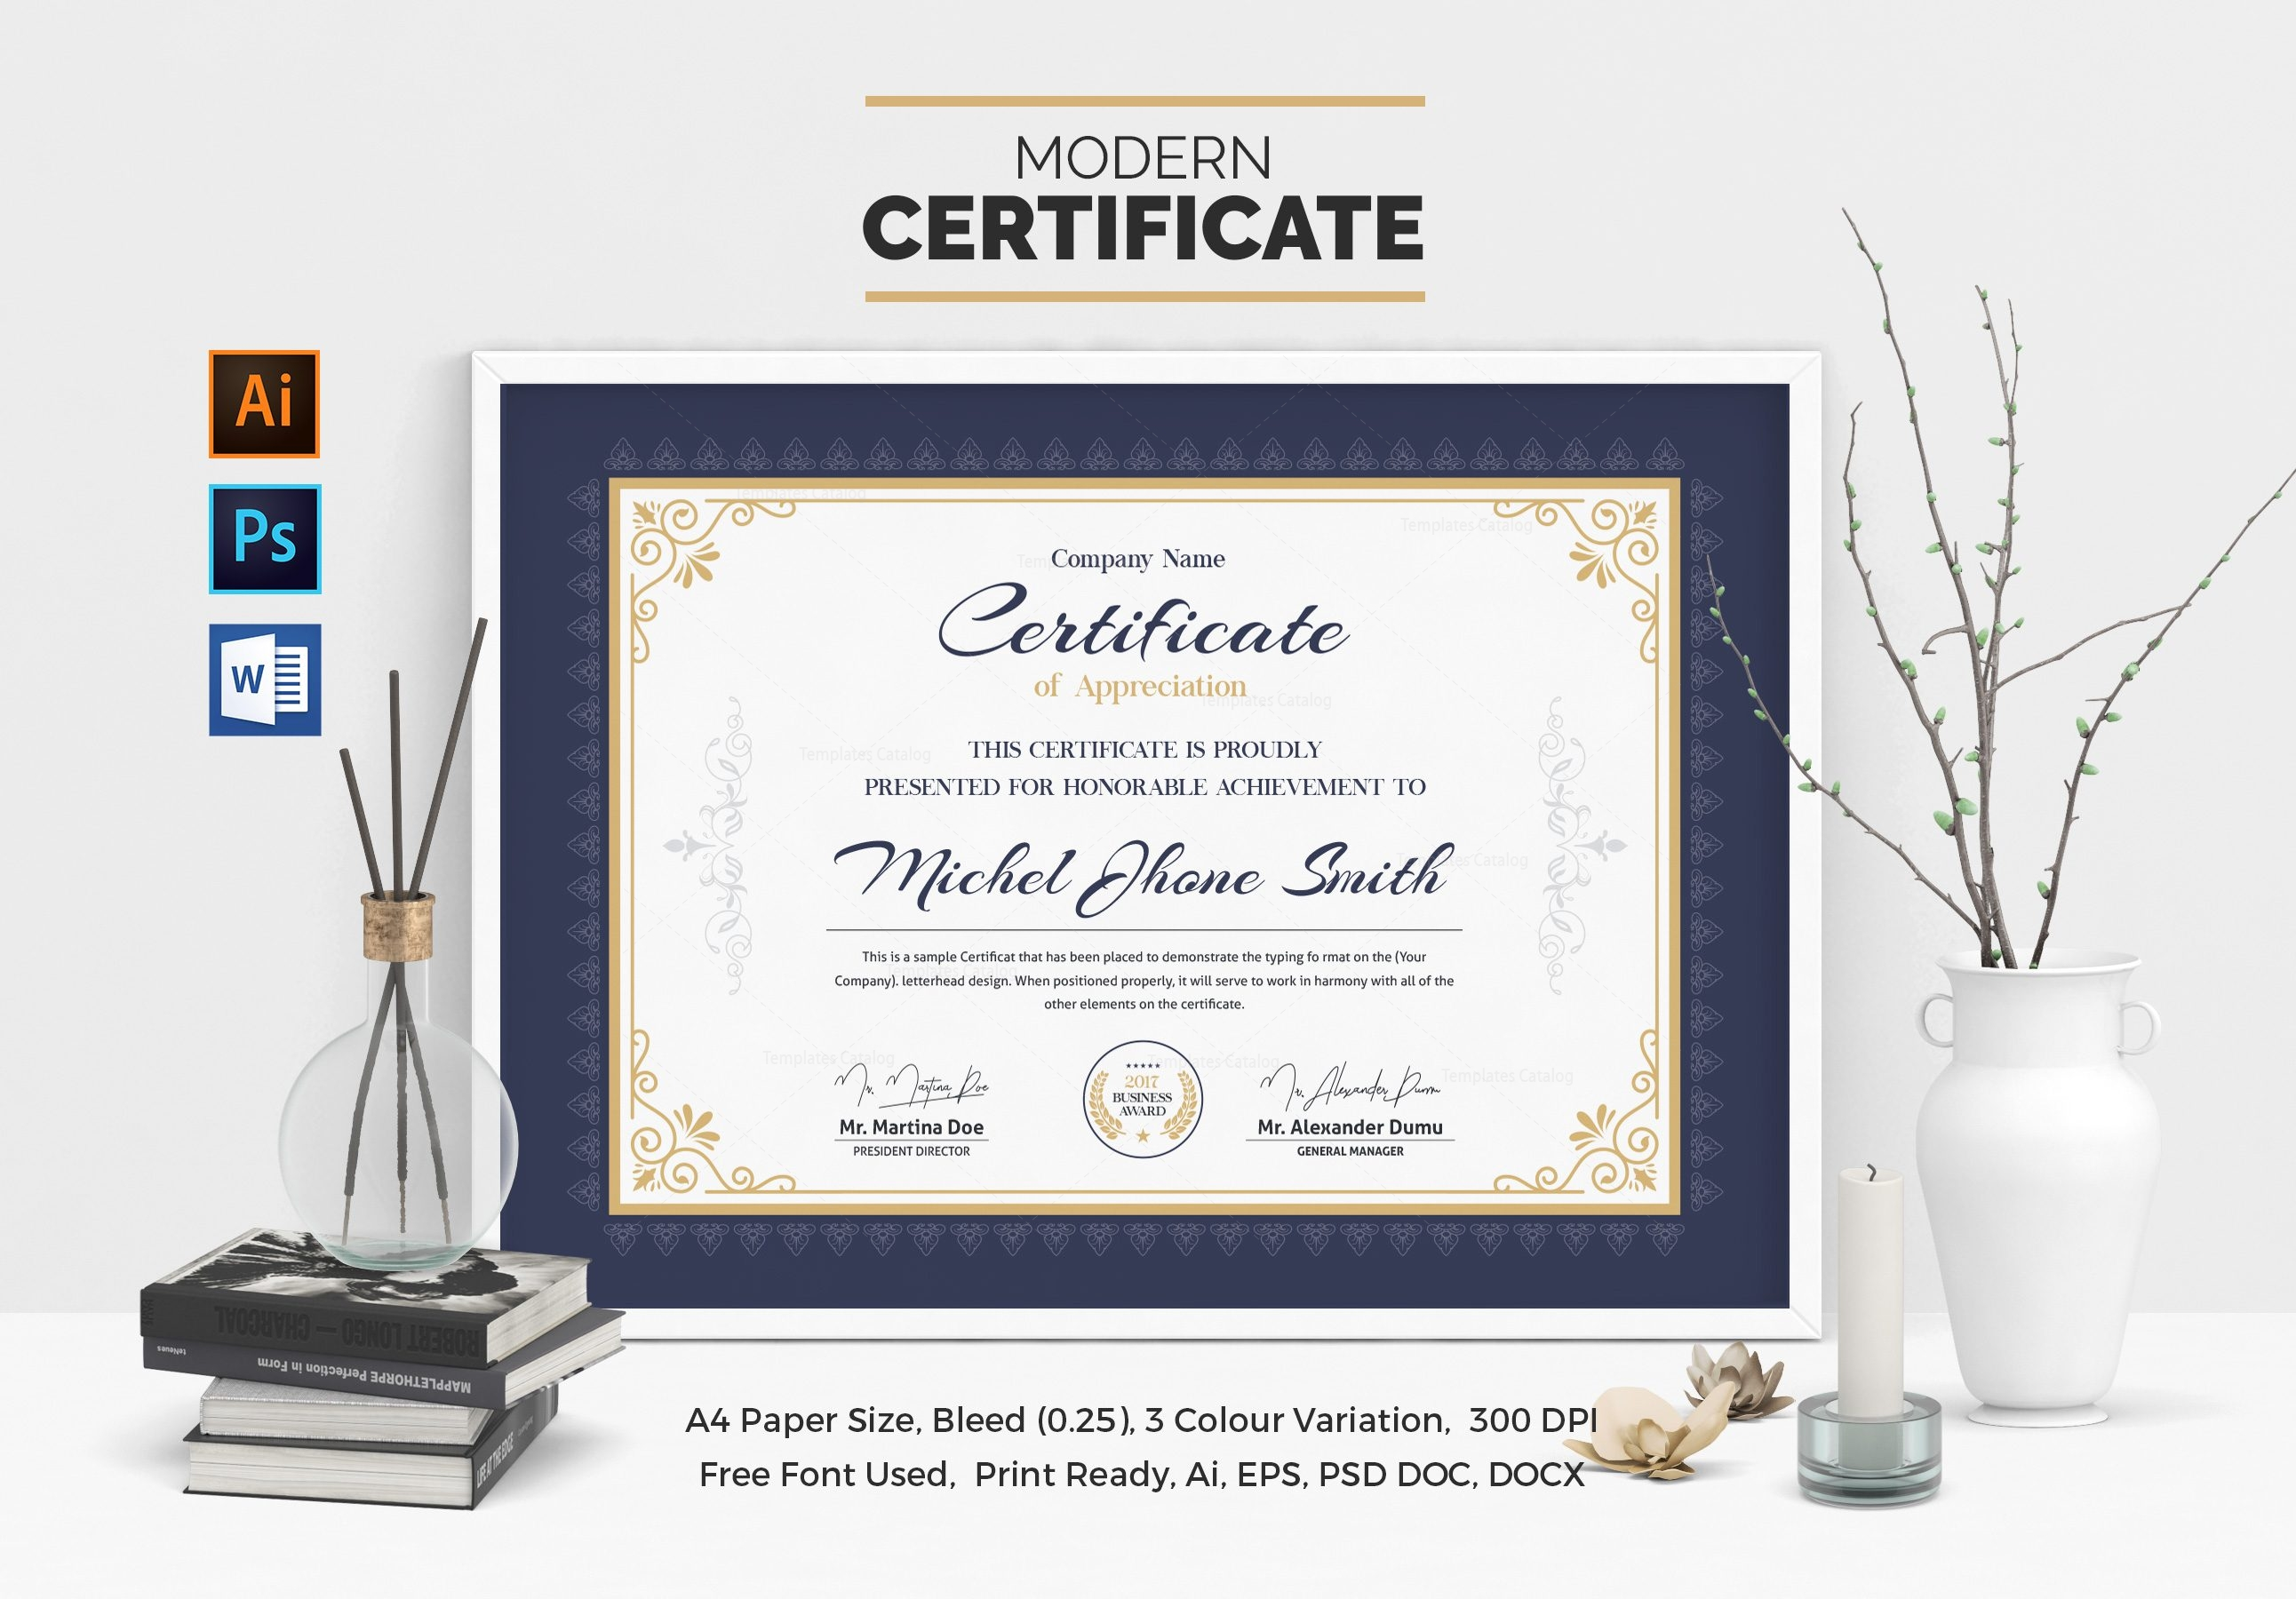 Free certificate template modern image collections certificate classic certificate template 000506 template catalog xflitez Images